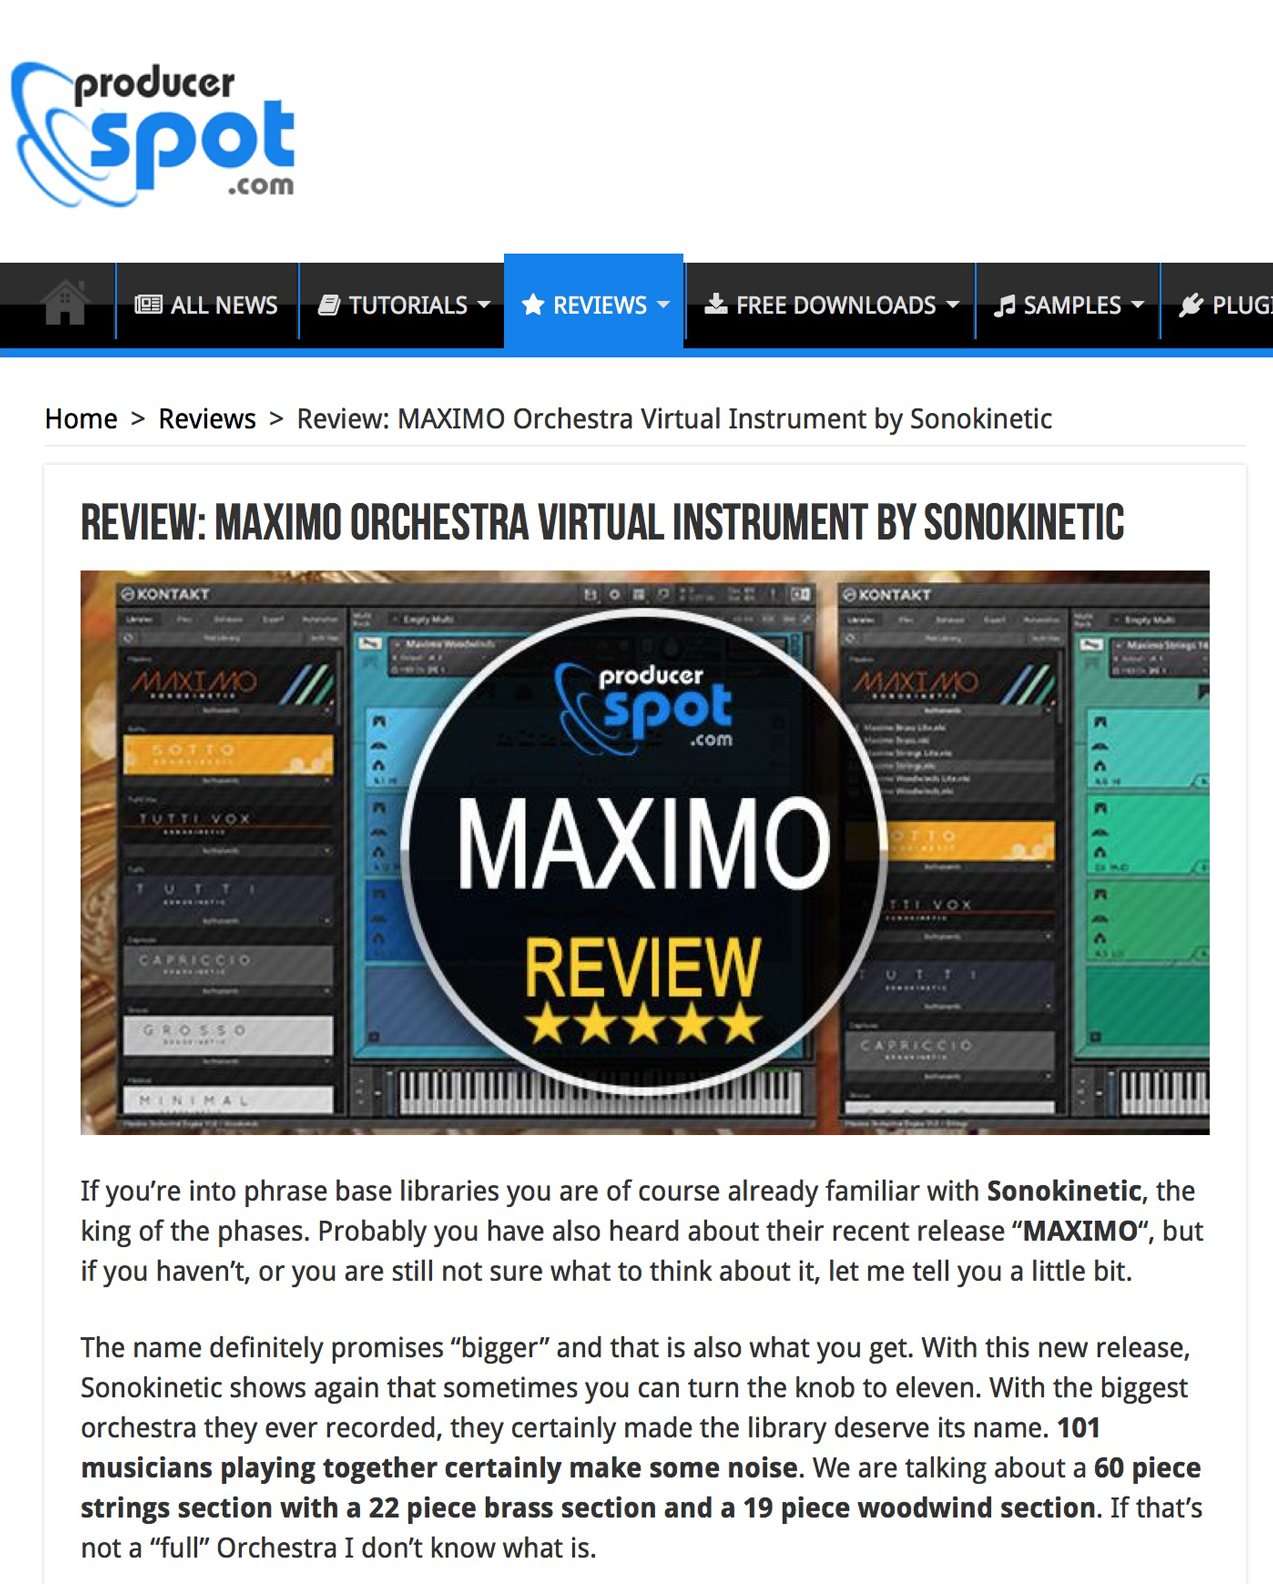 Maxmo Review by Producer Spot